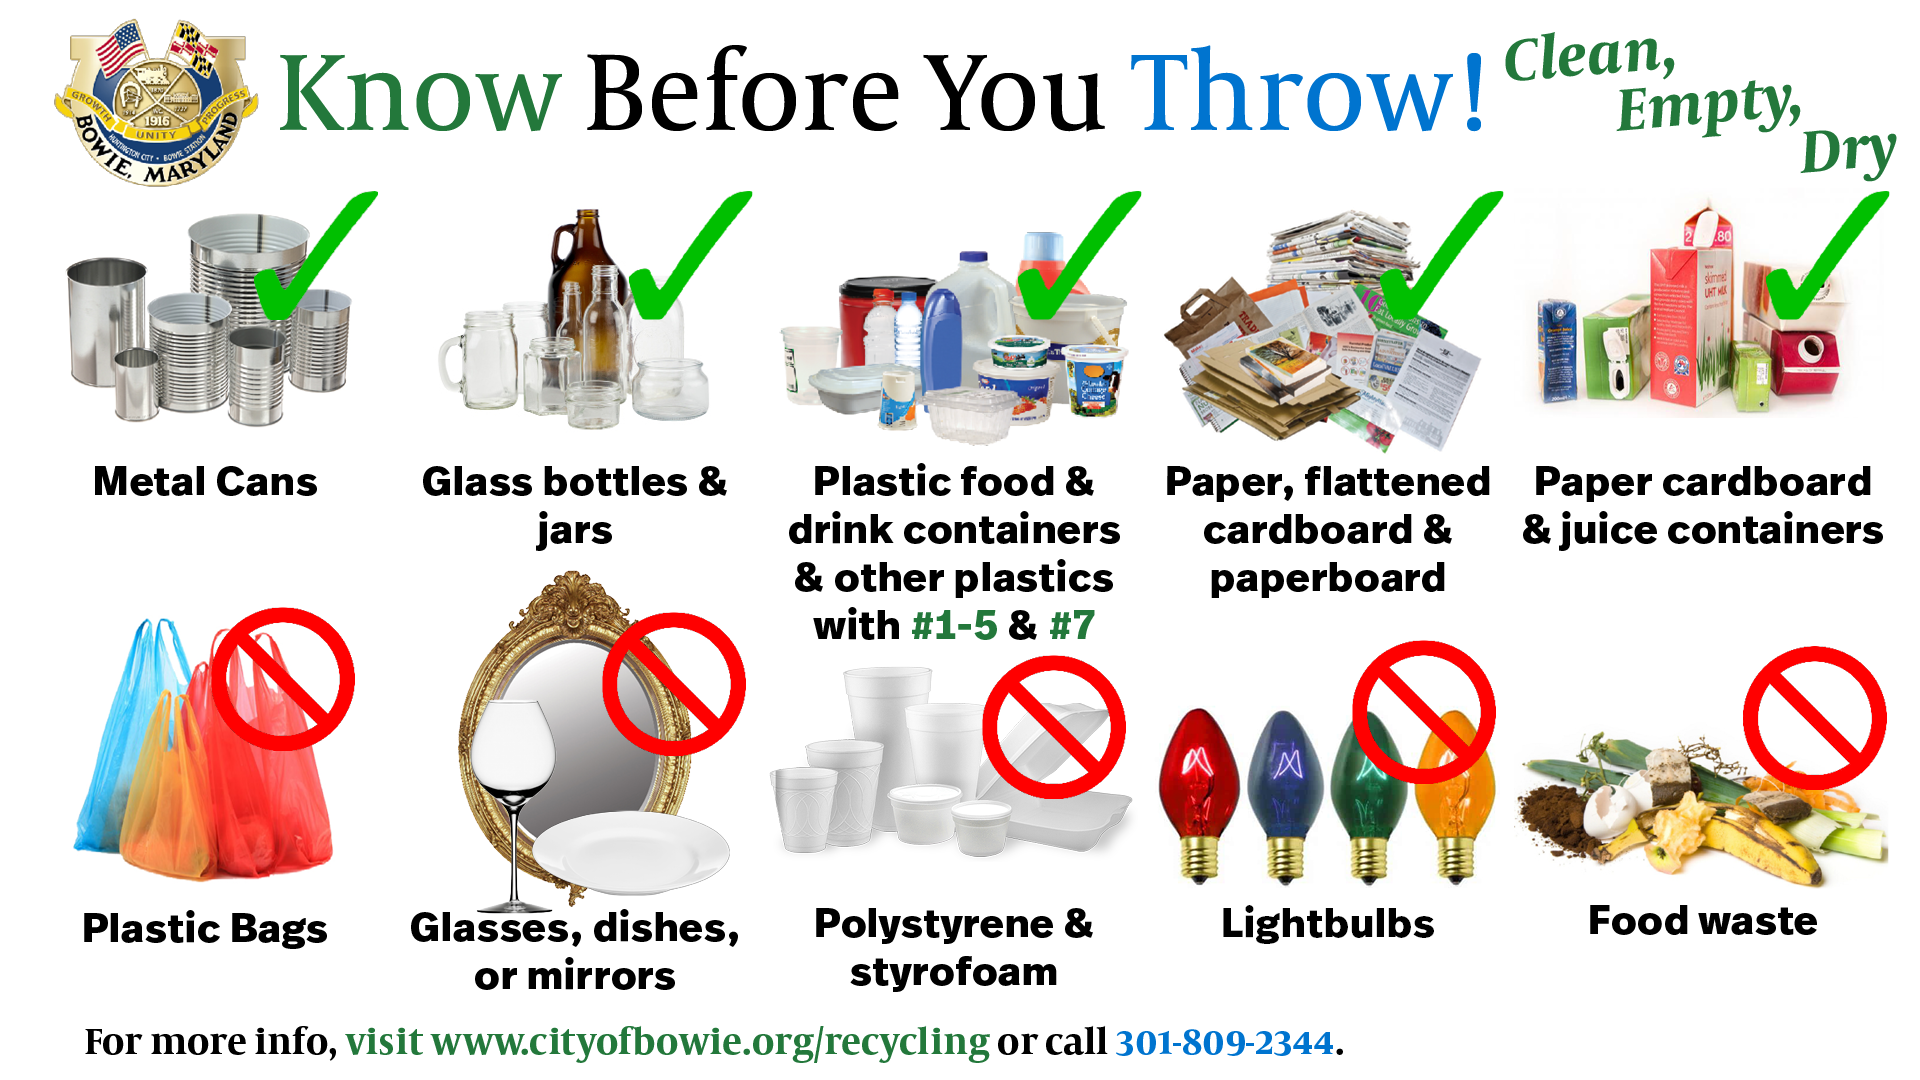 Know Before You Throw